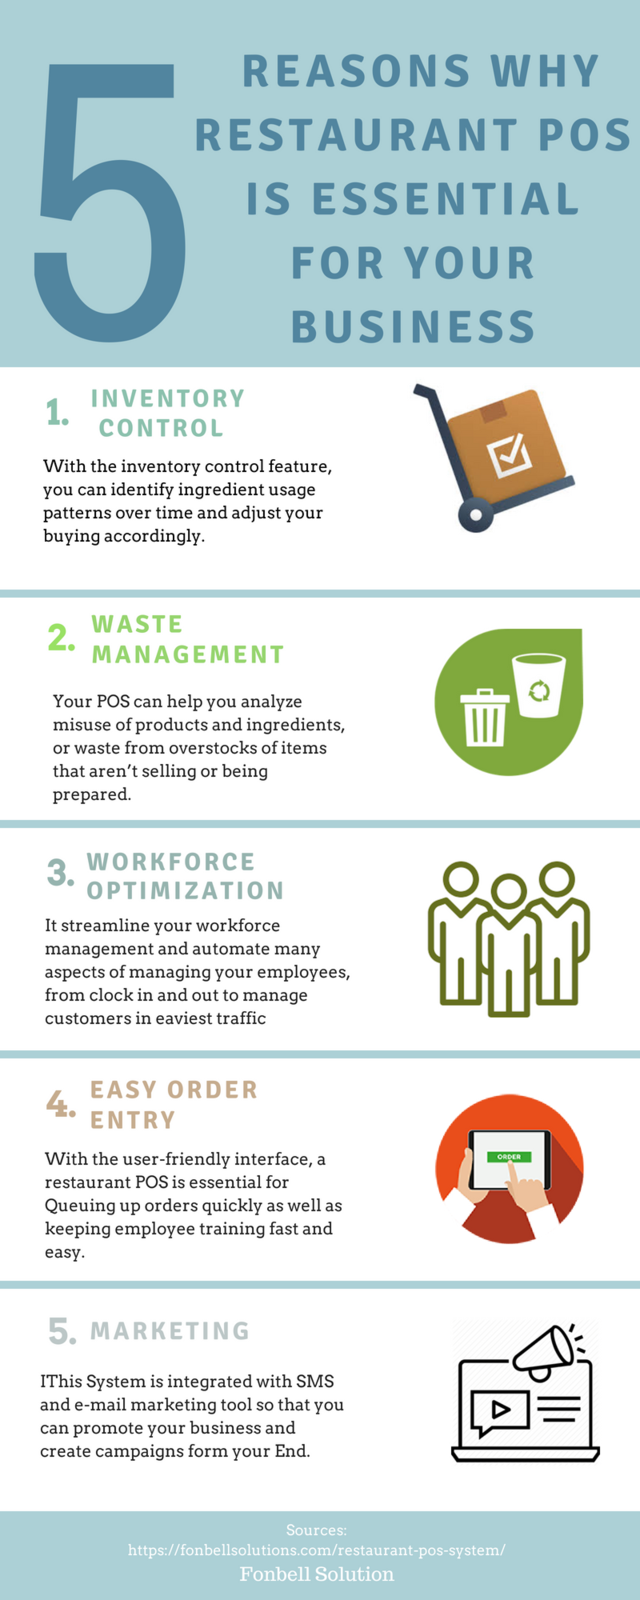 Reasons why restaurant pos is essential for your business